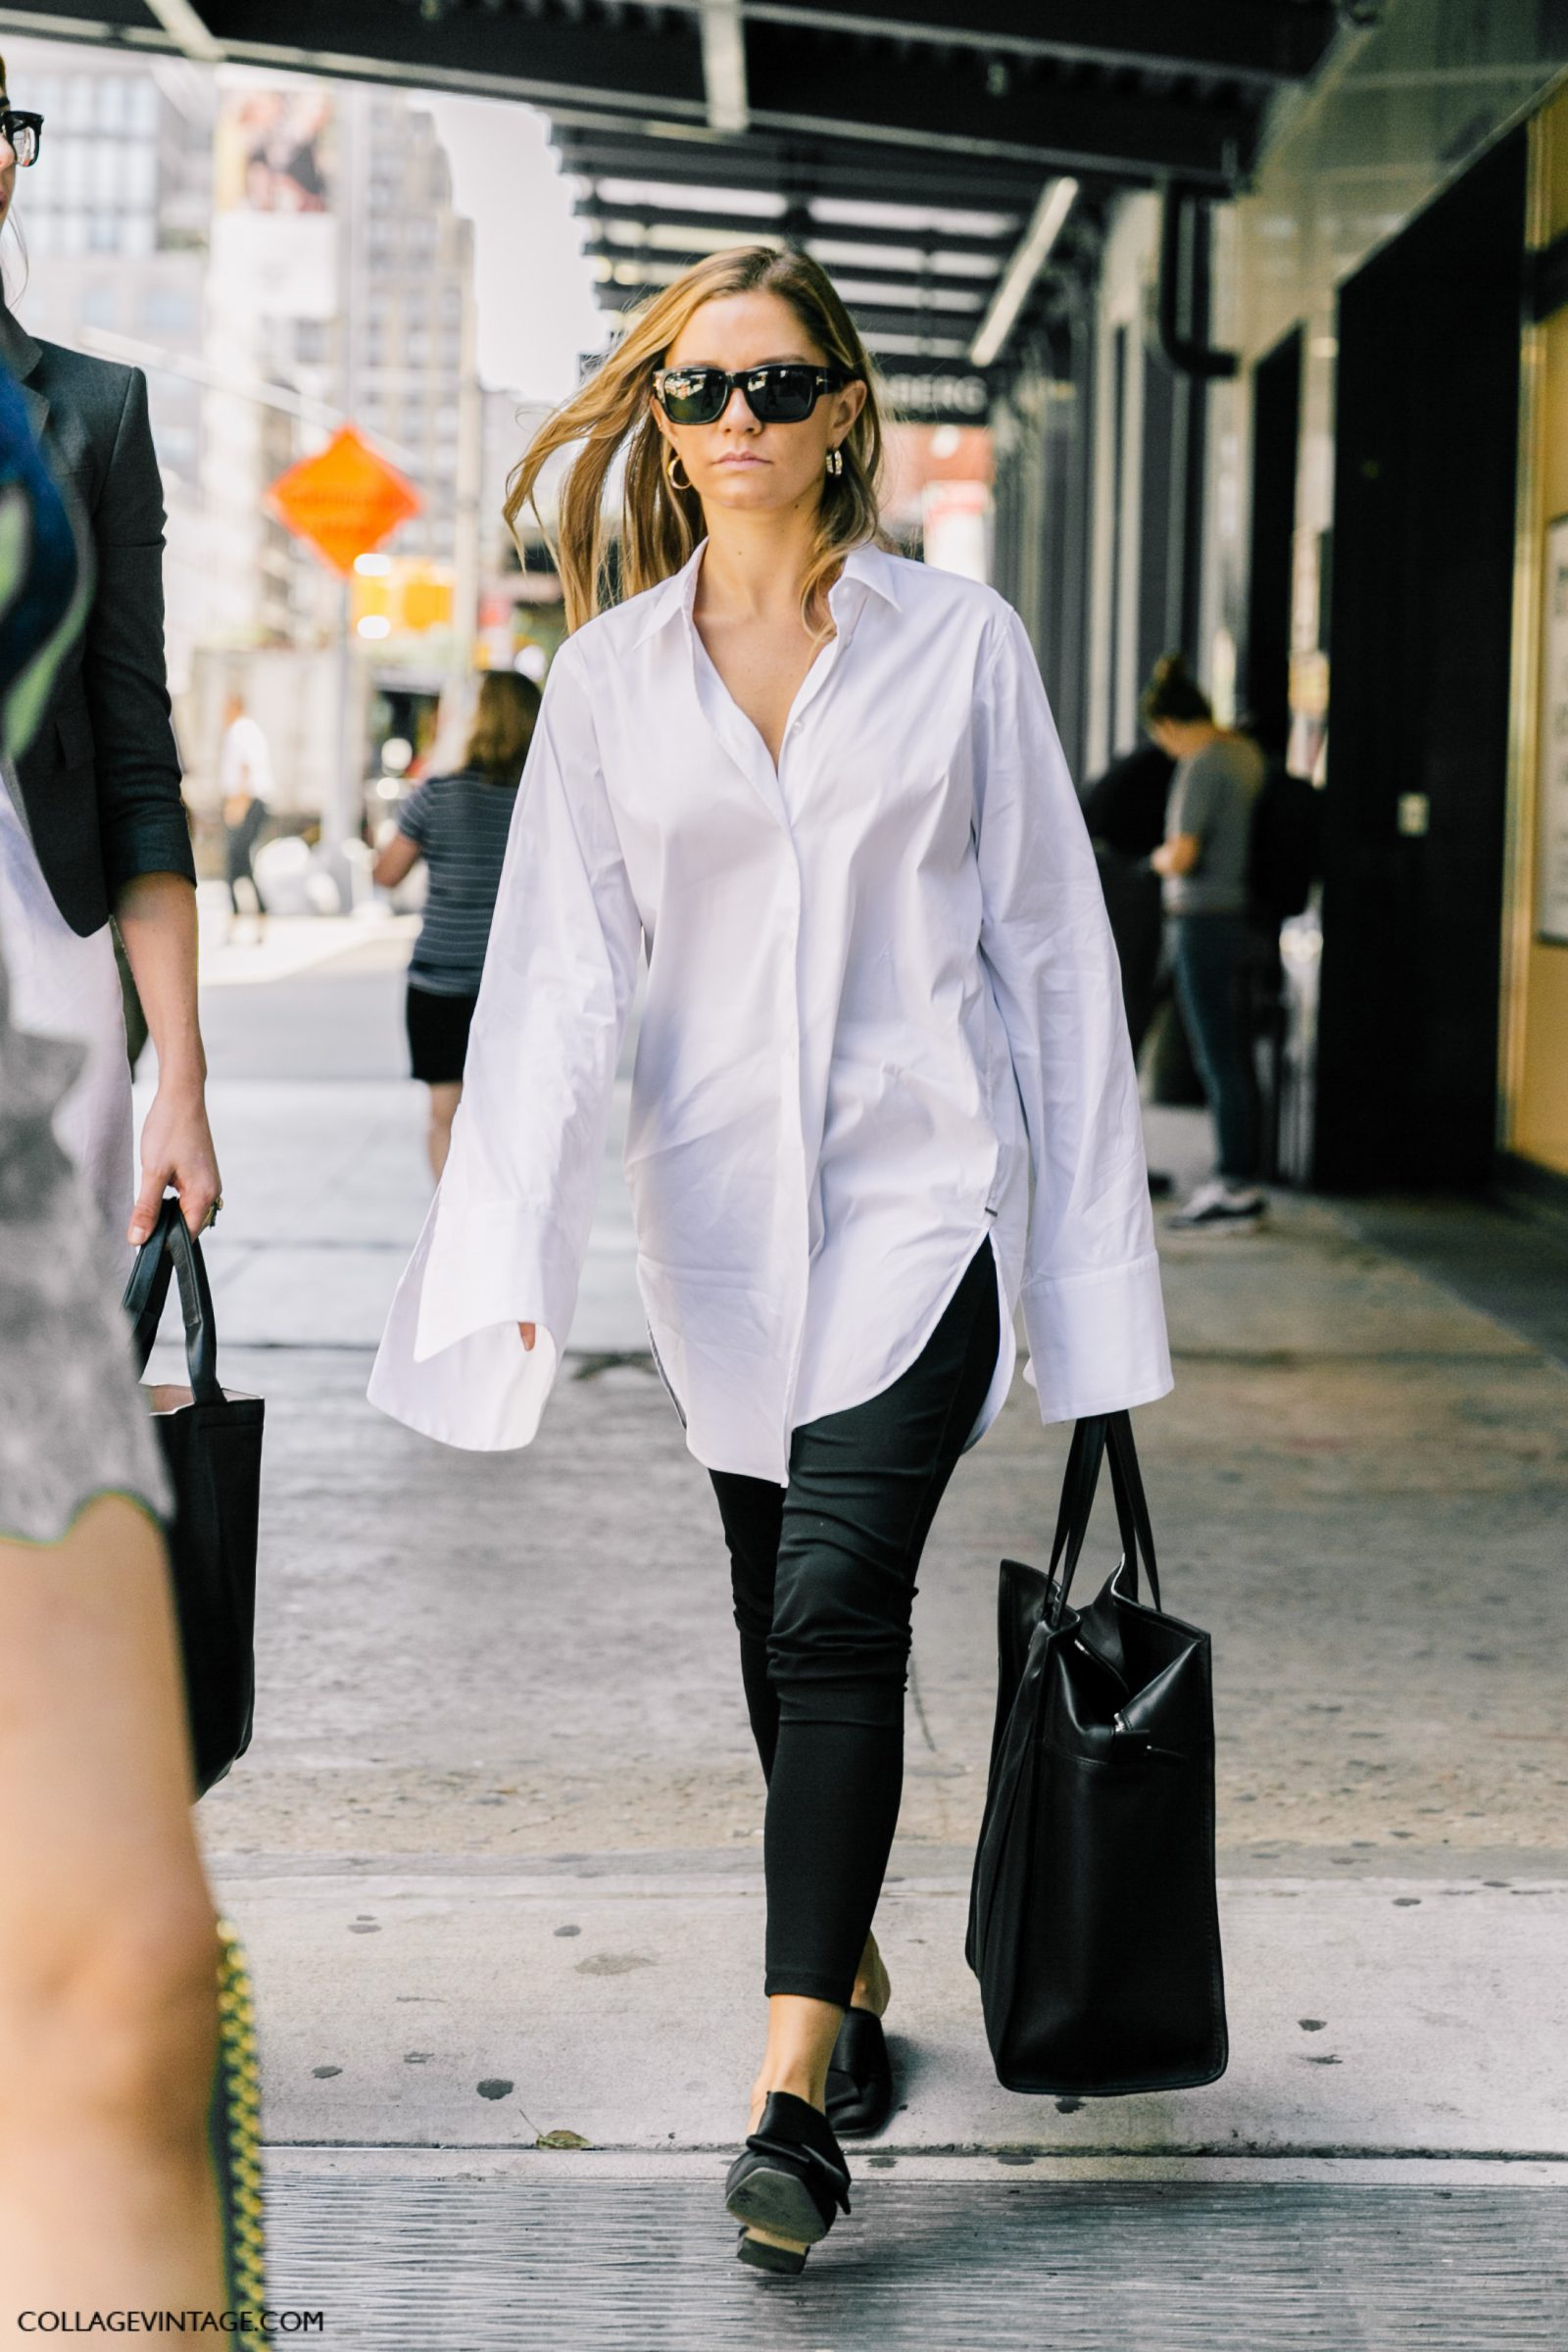 nyfw-new_york_fashion_week_ss17-street_style-outfits-collage_vintage-vintage-phillip_lim-the-row-proenza_schouler-rossie_aussolin-58